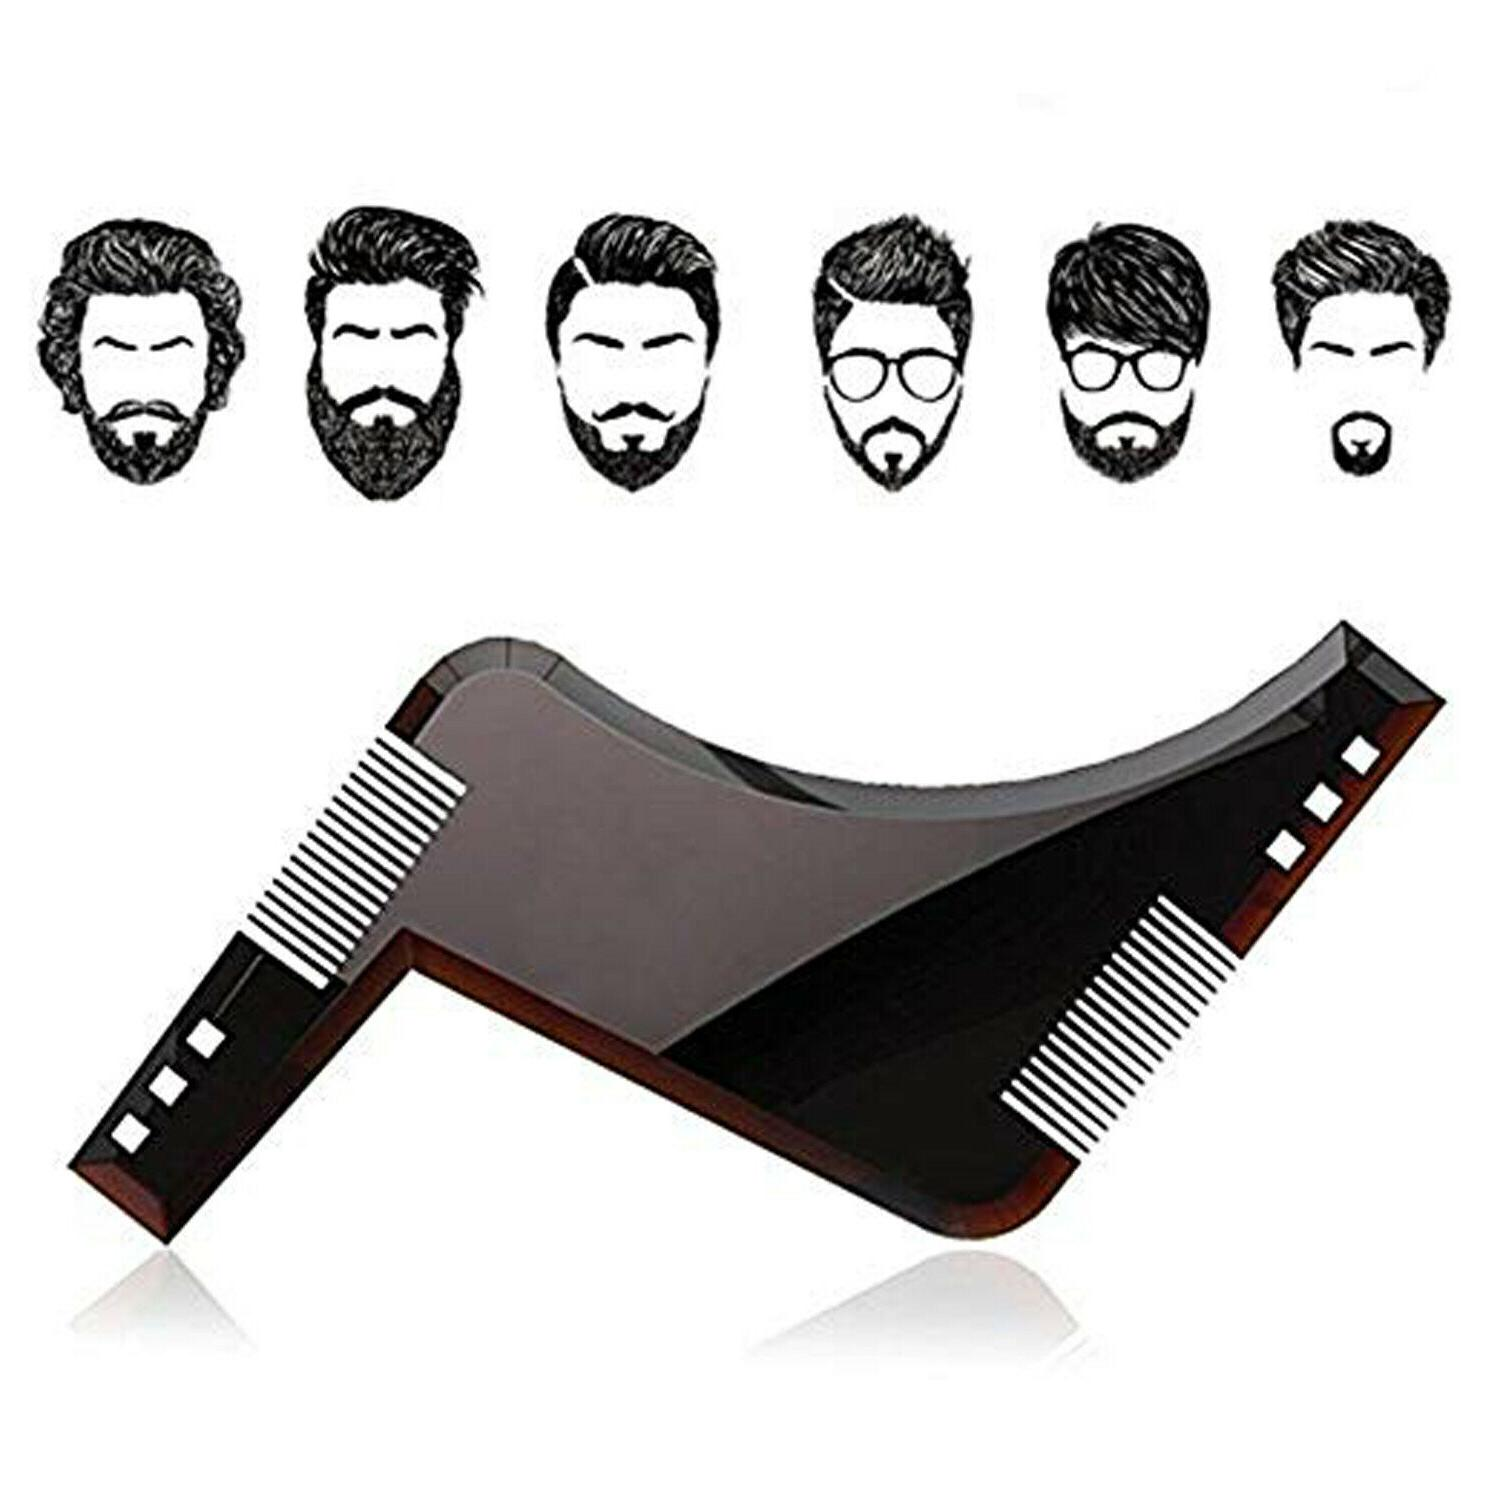 Beard Hairline Cutting Guide Hair Liners Edger Tool Edging